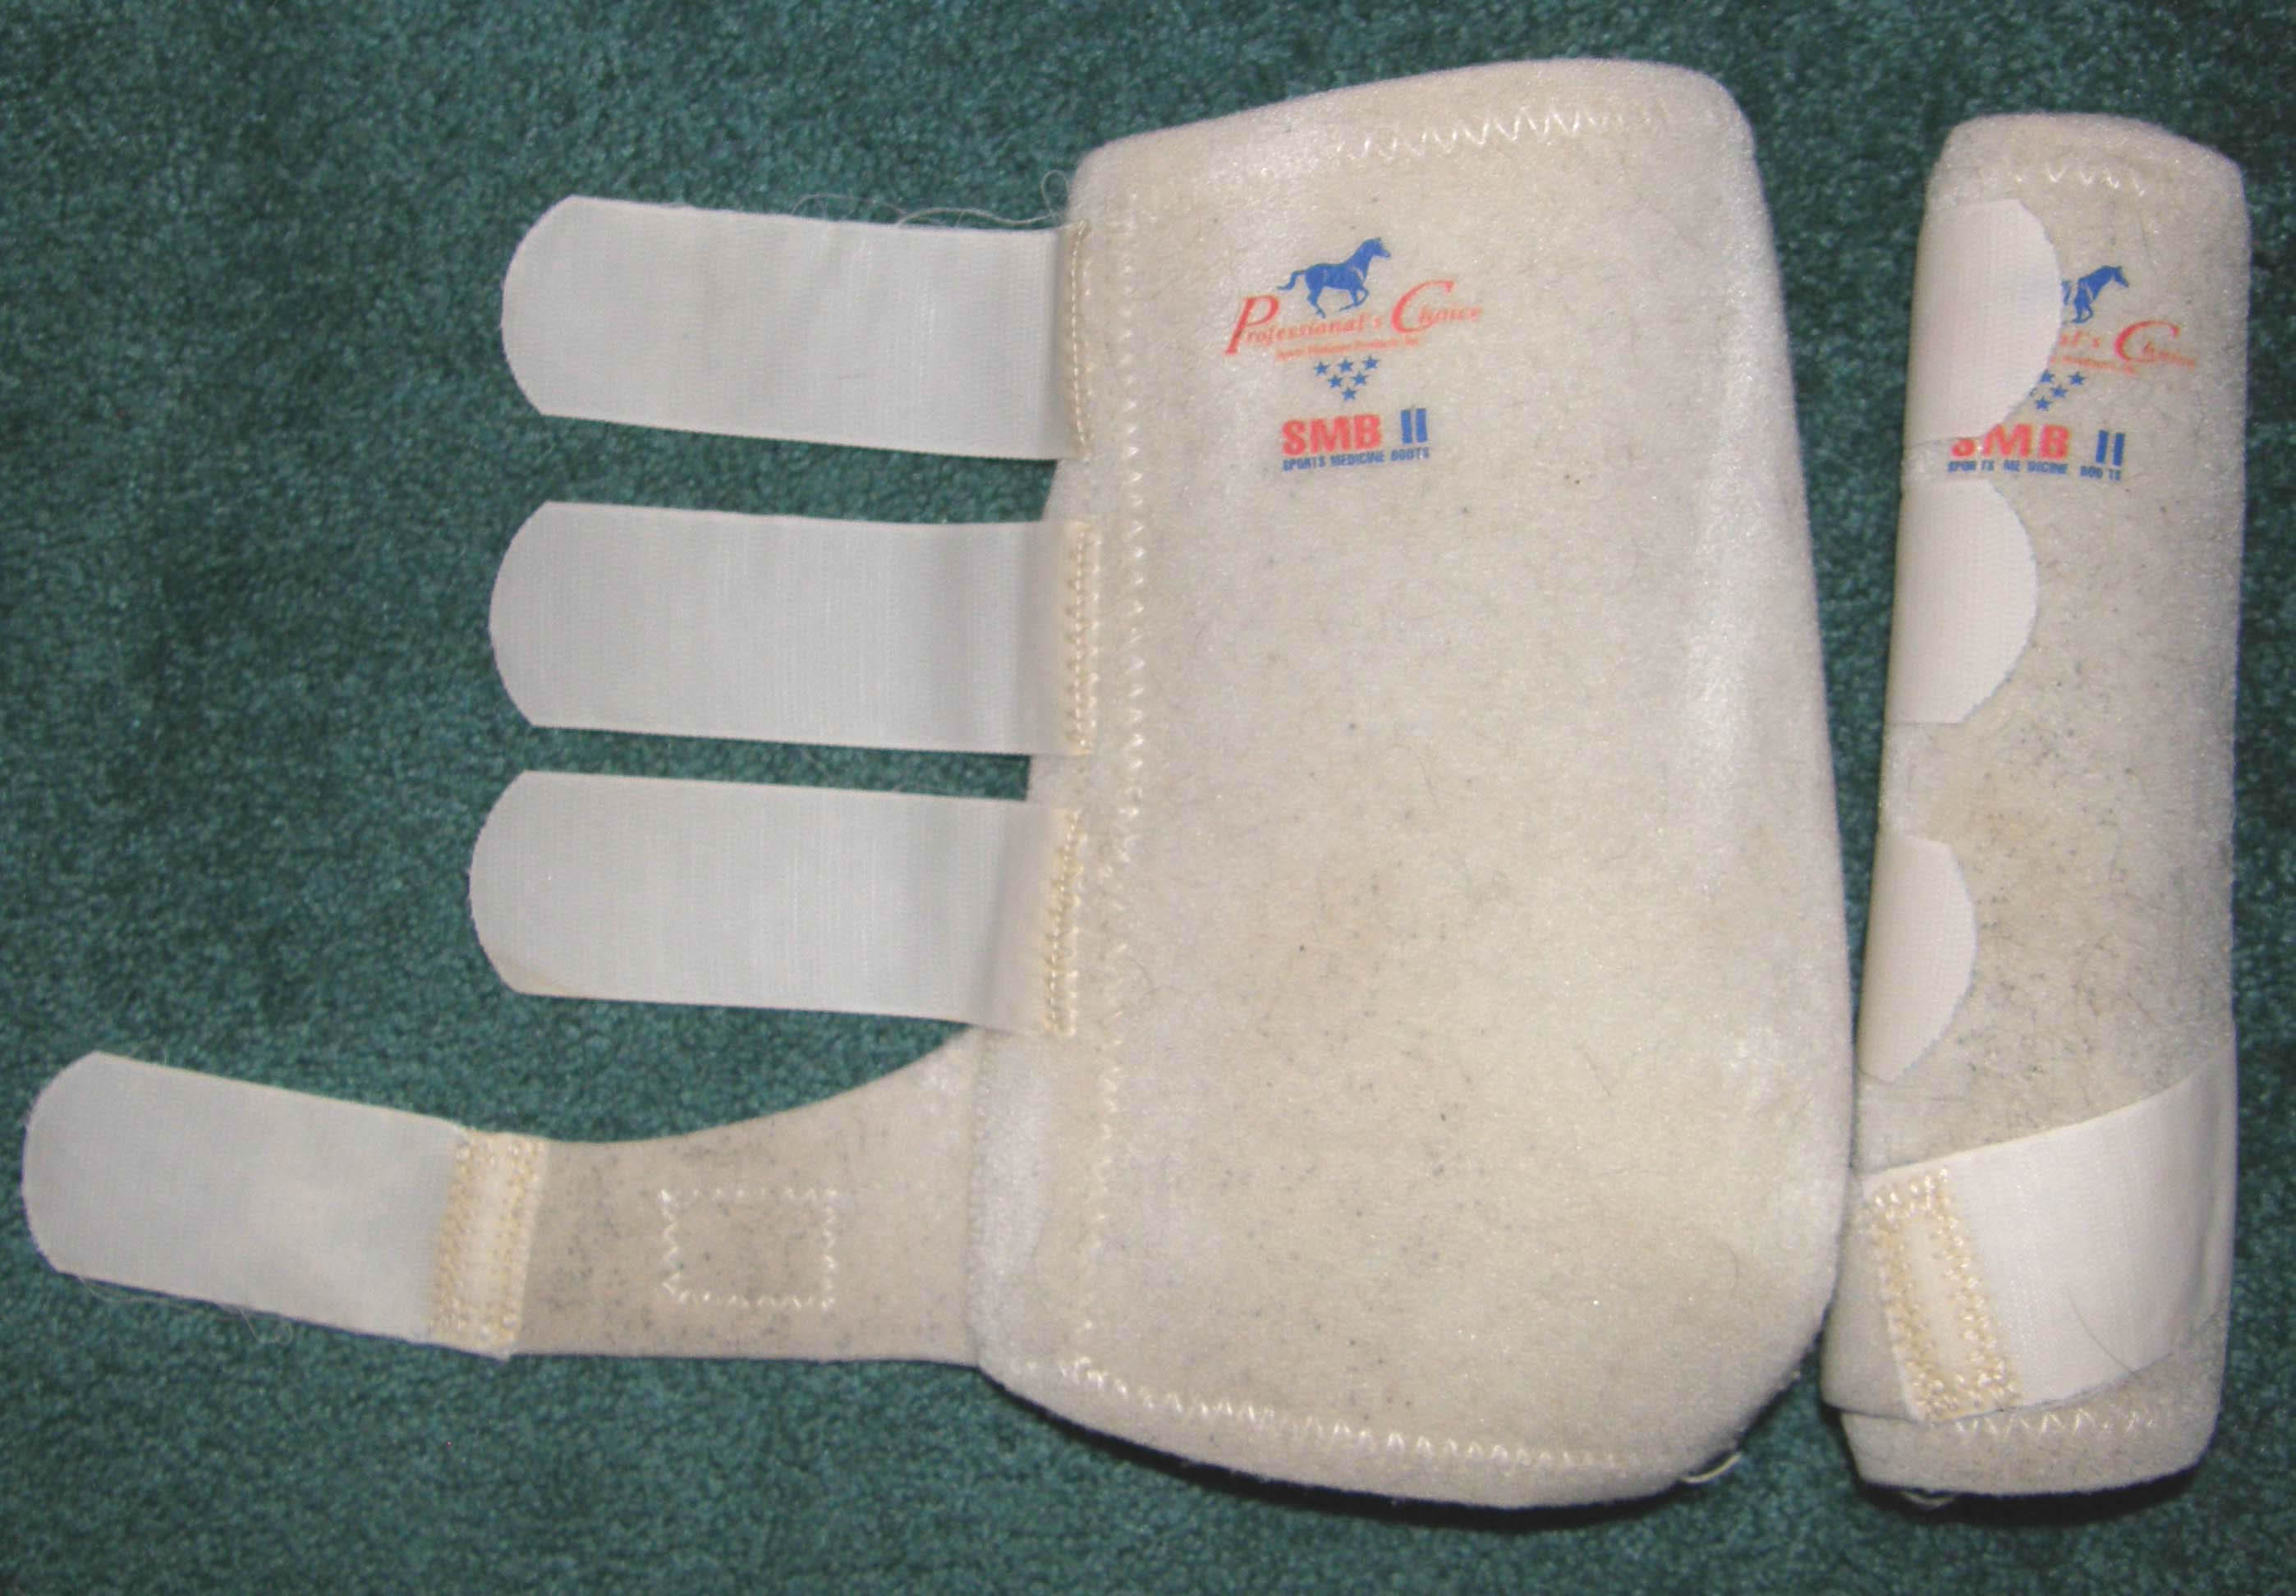 Professional's Choice SMB II 200 Sports Medicine Boots Leg Protection L Horse White